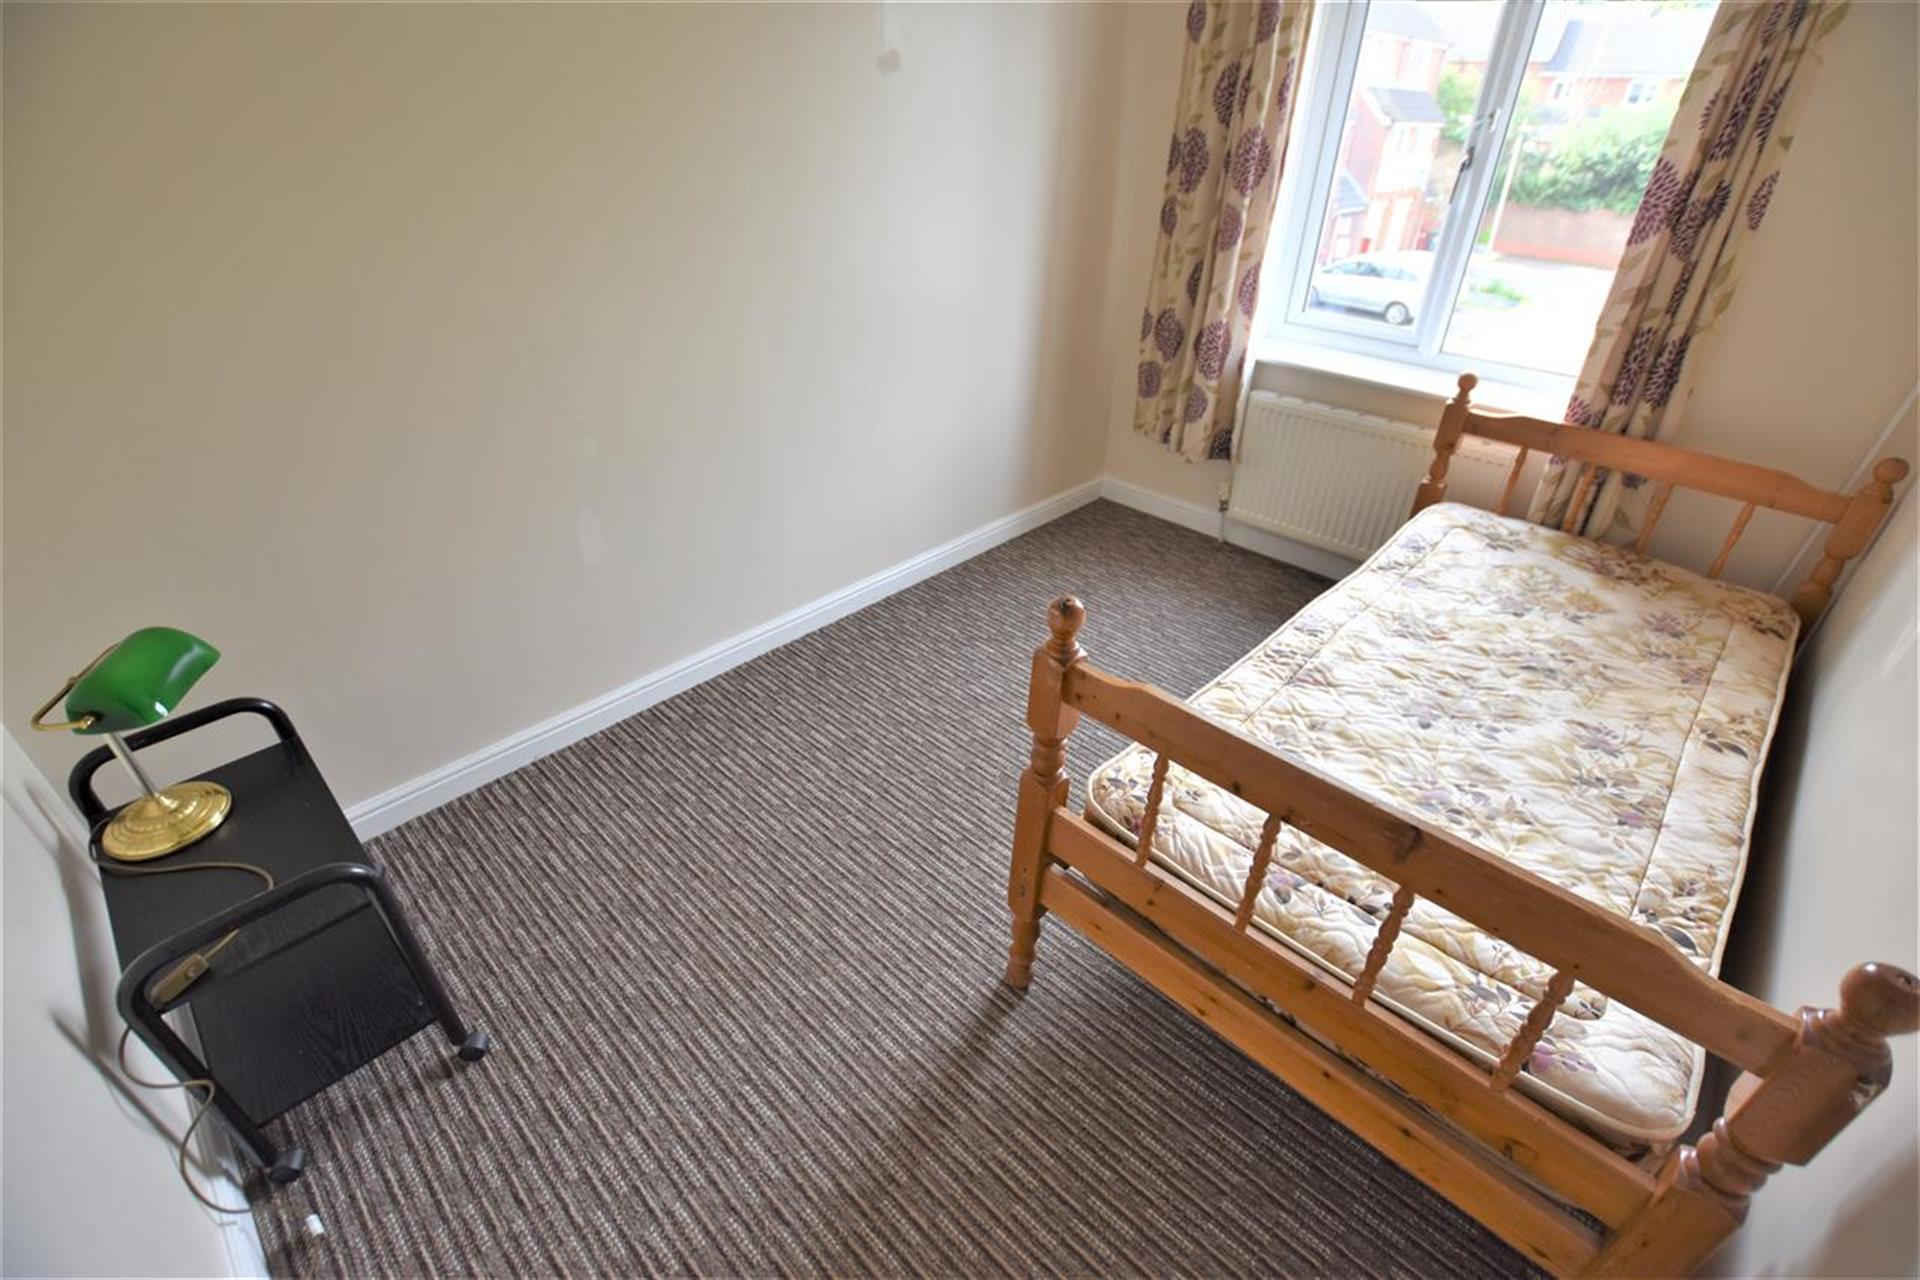 2 Bedroom House For Sale - Second Bedroom